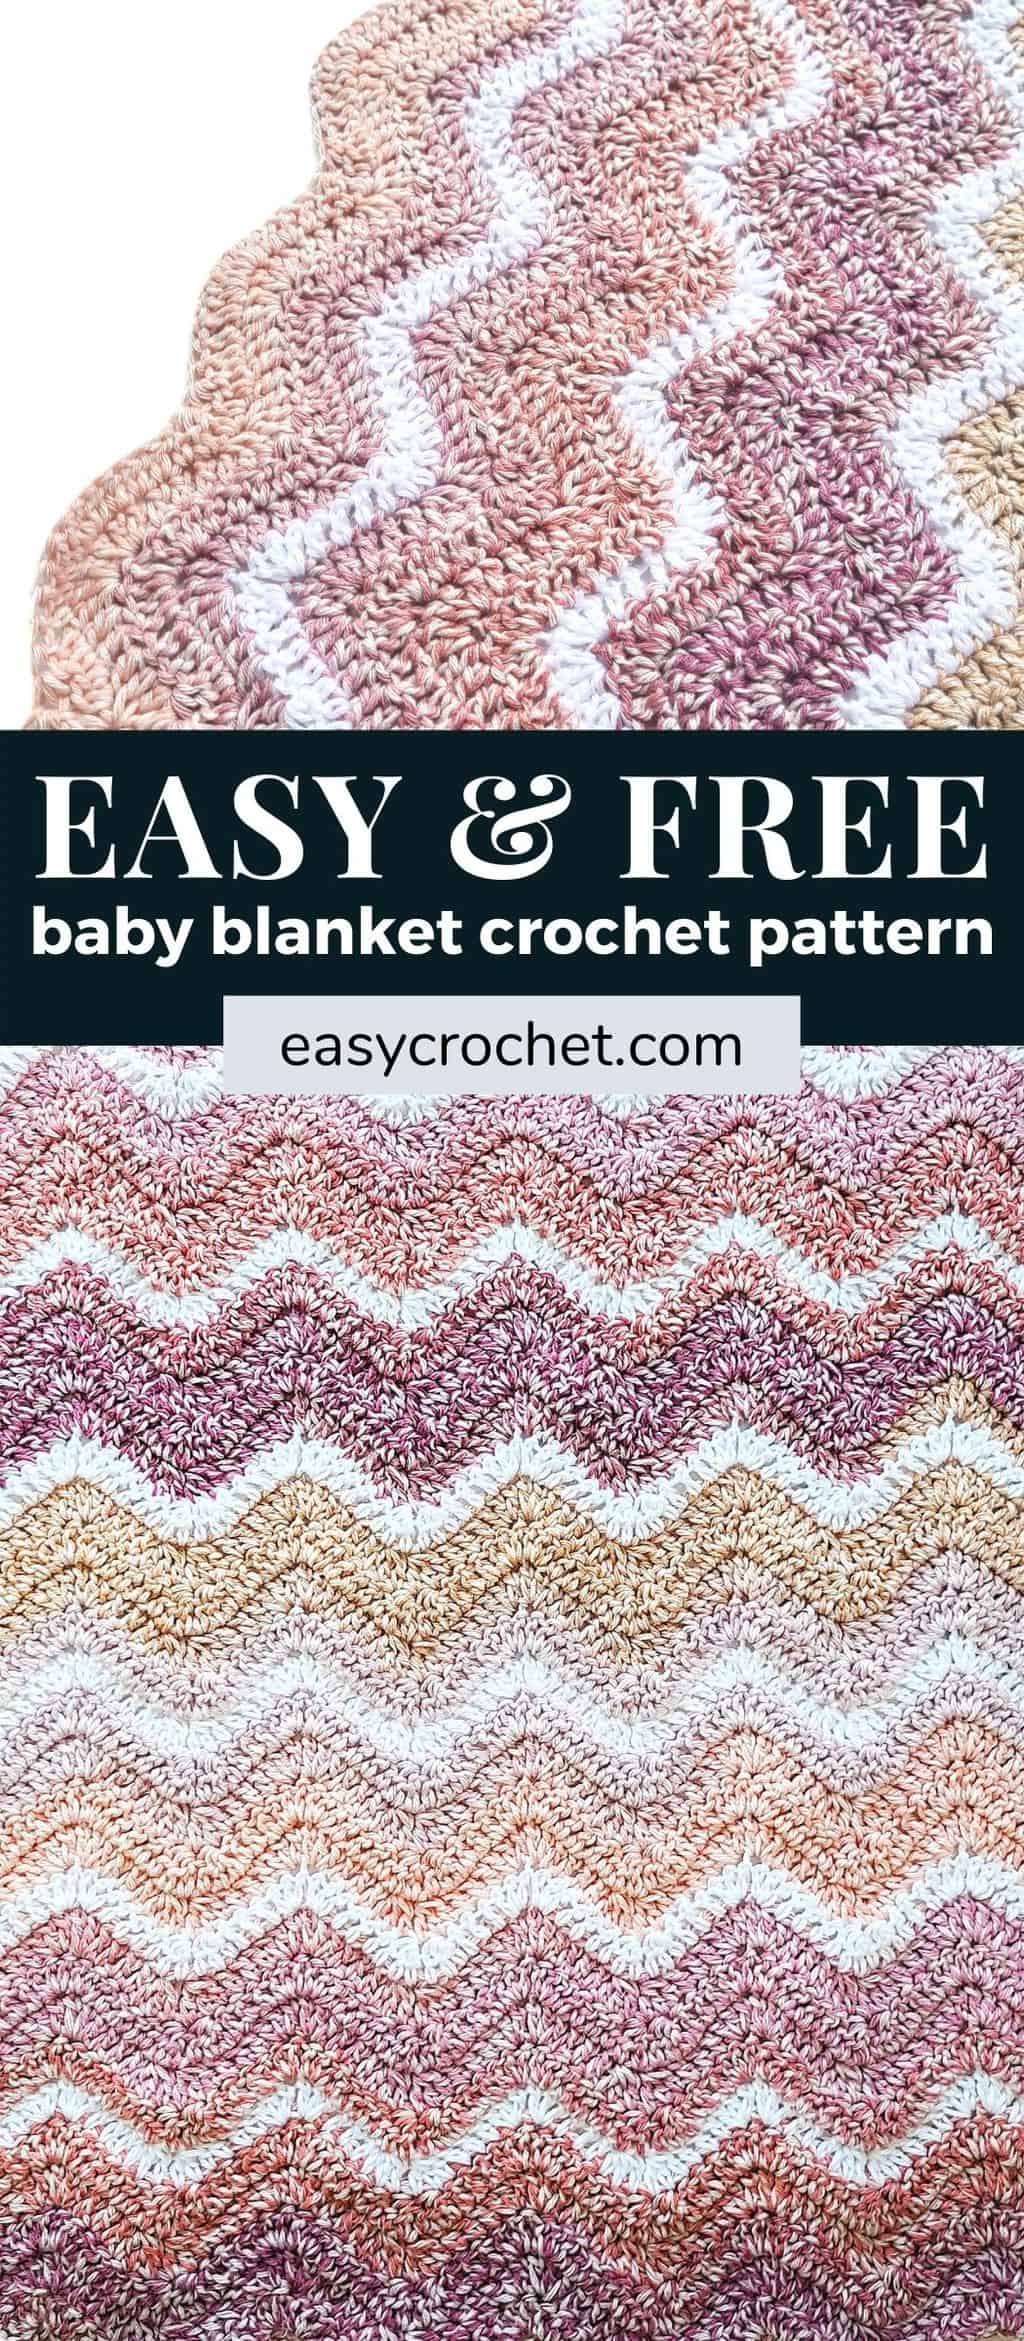 Learn how to crochet this ripple crochet baby blanket pattern with our free pattern! via @easycrochetcom